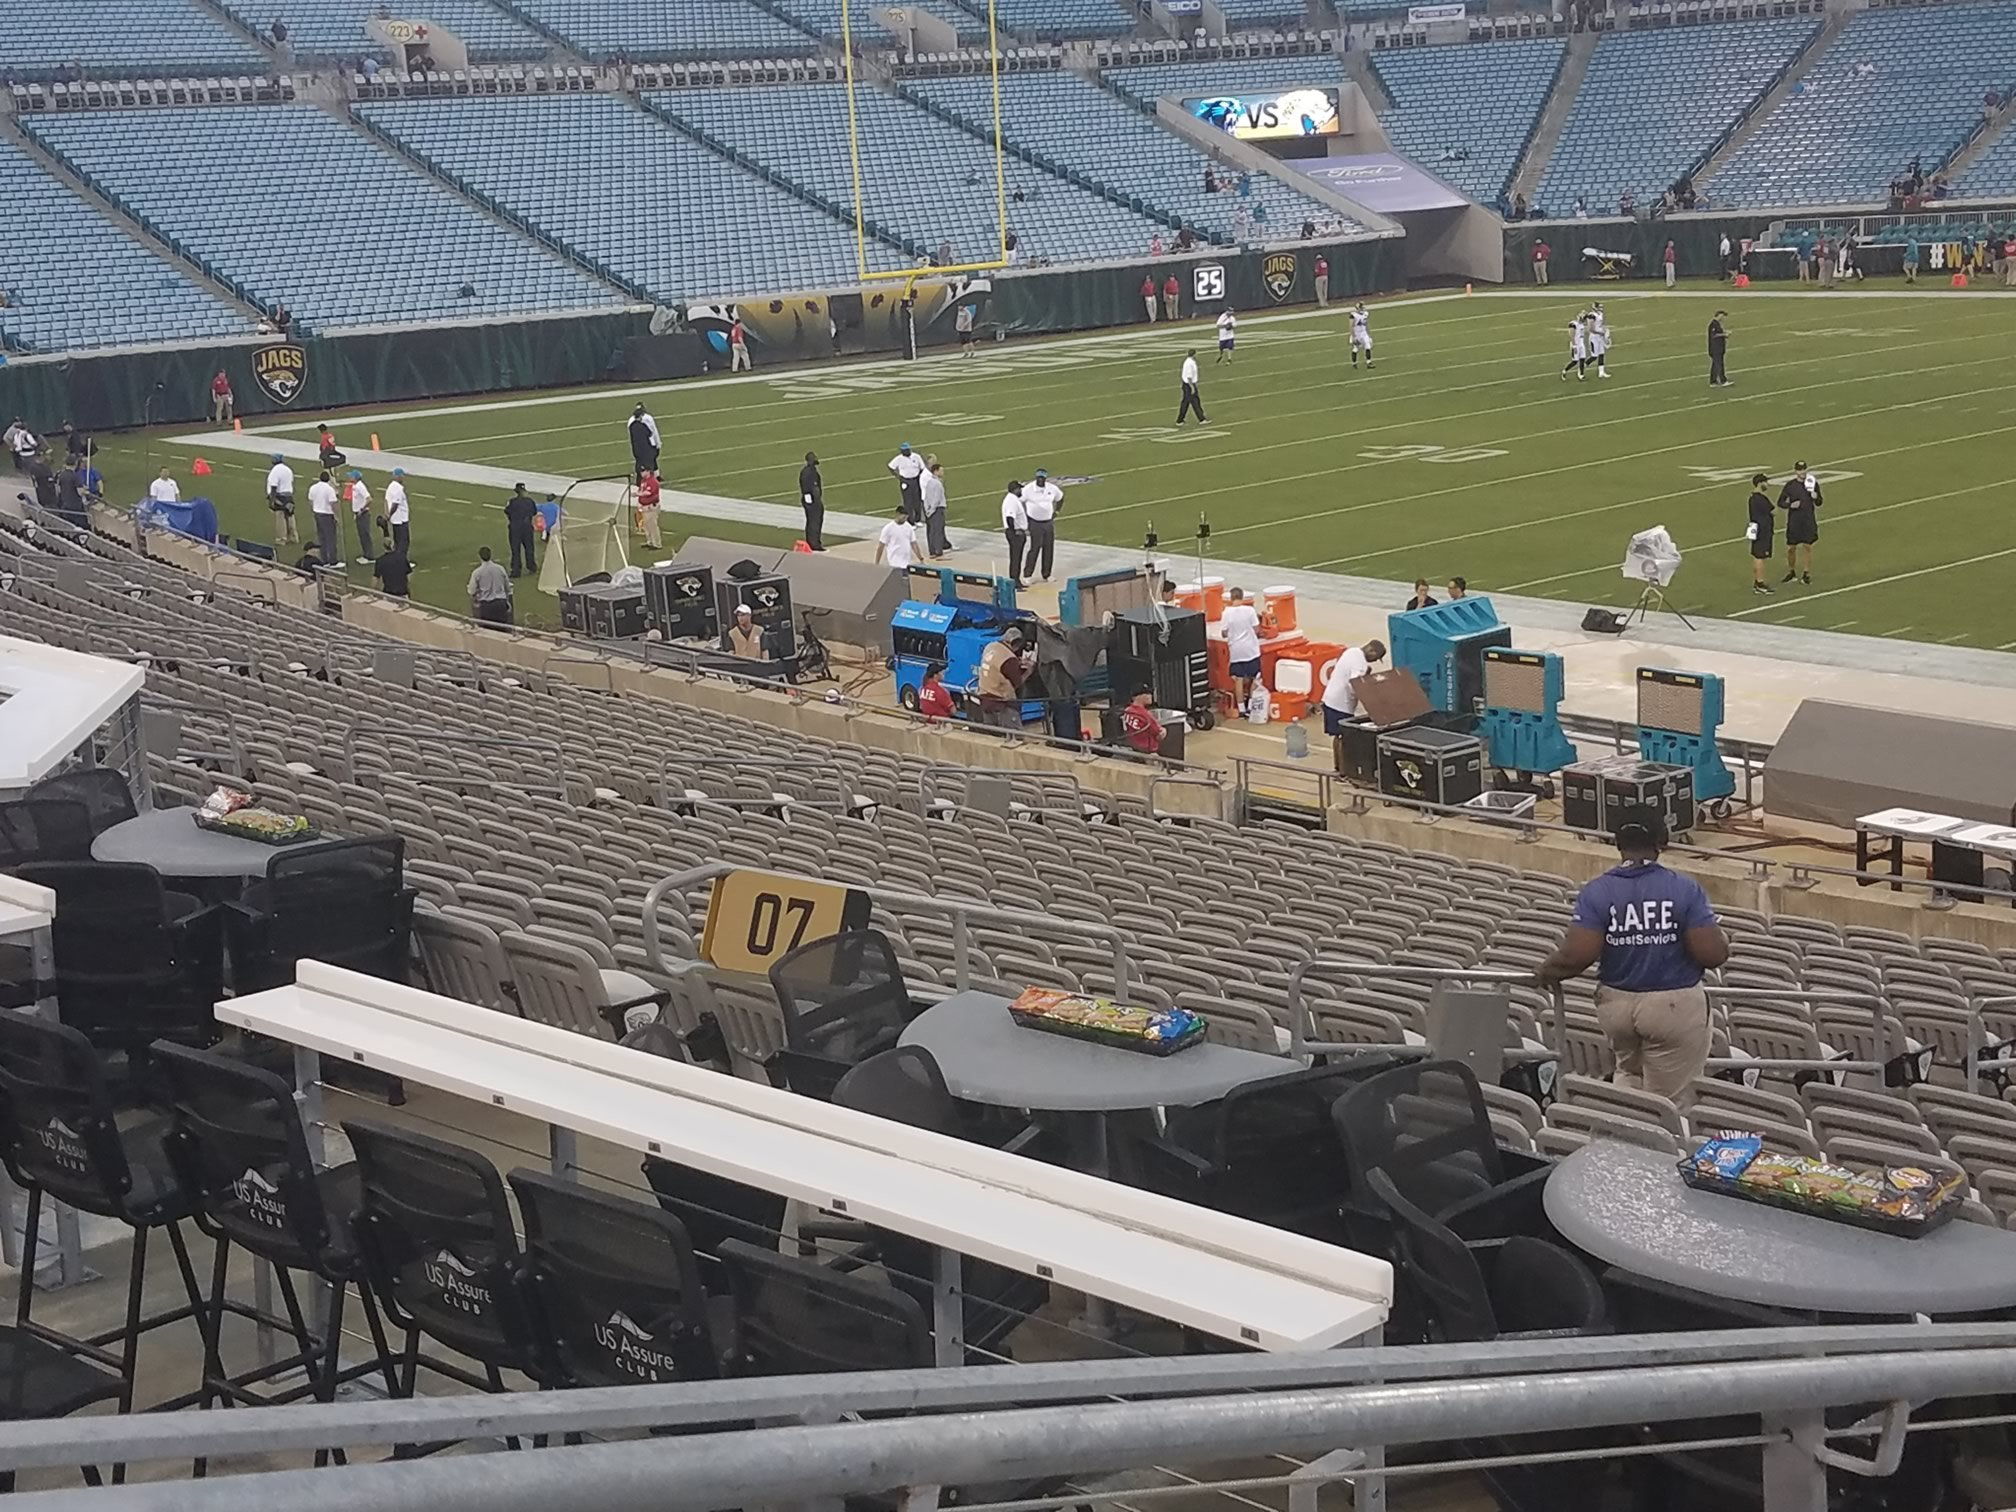 A Look At The Kickoff Tables And Bar Rails. These Are On The West Side Of  The Field Between Sections 07 And 107.